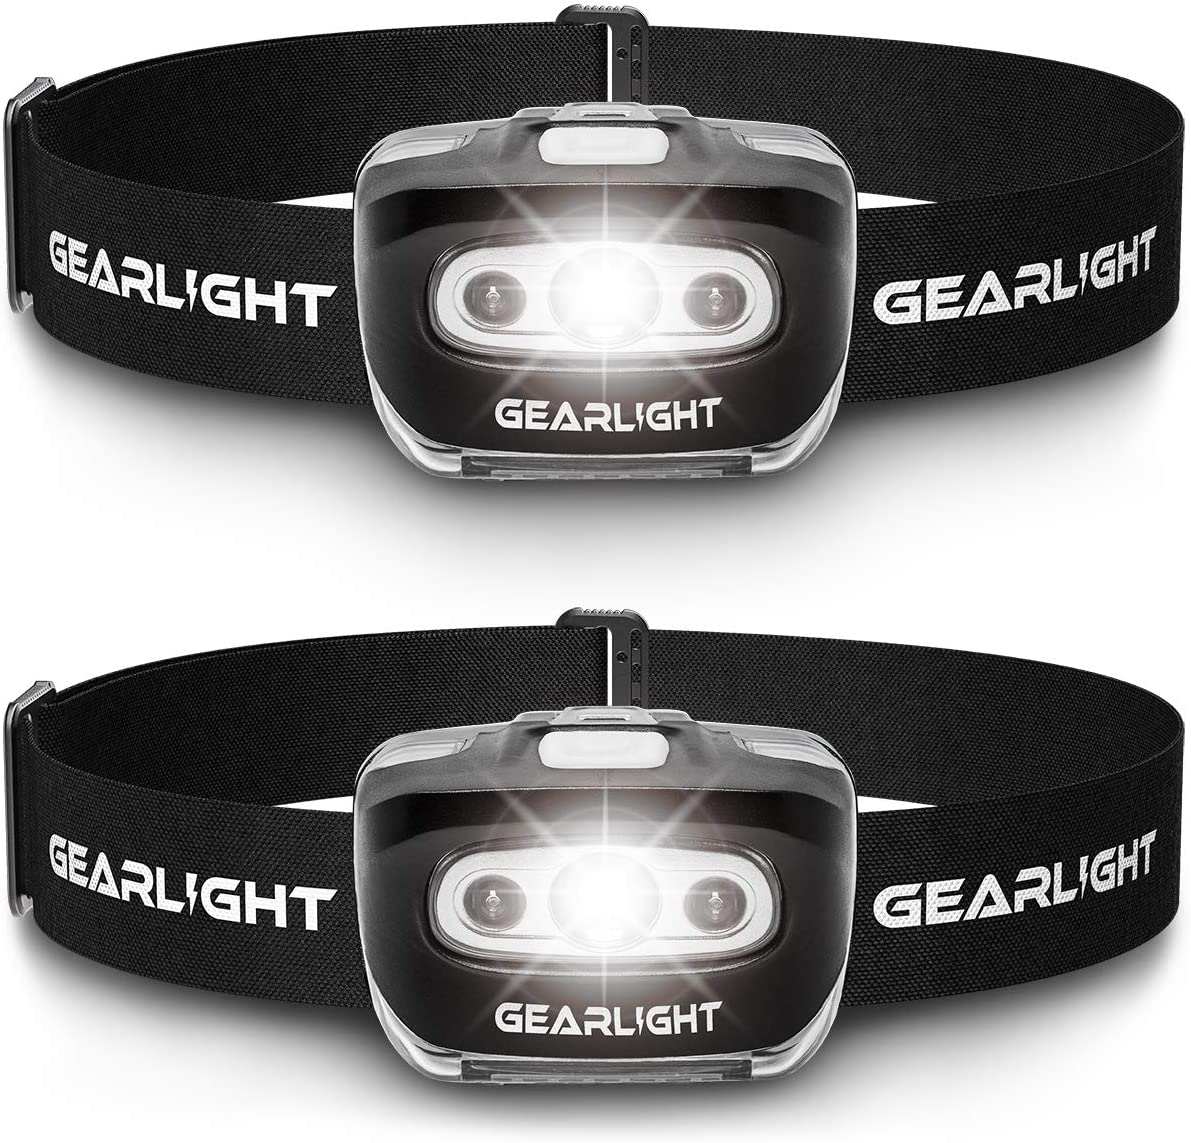 GearLight LED Headlamp Flashlight S500 [2 PACK] - Running, Camping, and Outdoor Headlamps - Best Head Lamp with Red Safety Light for Adults and Kids - -